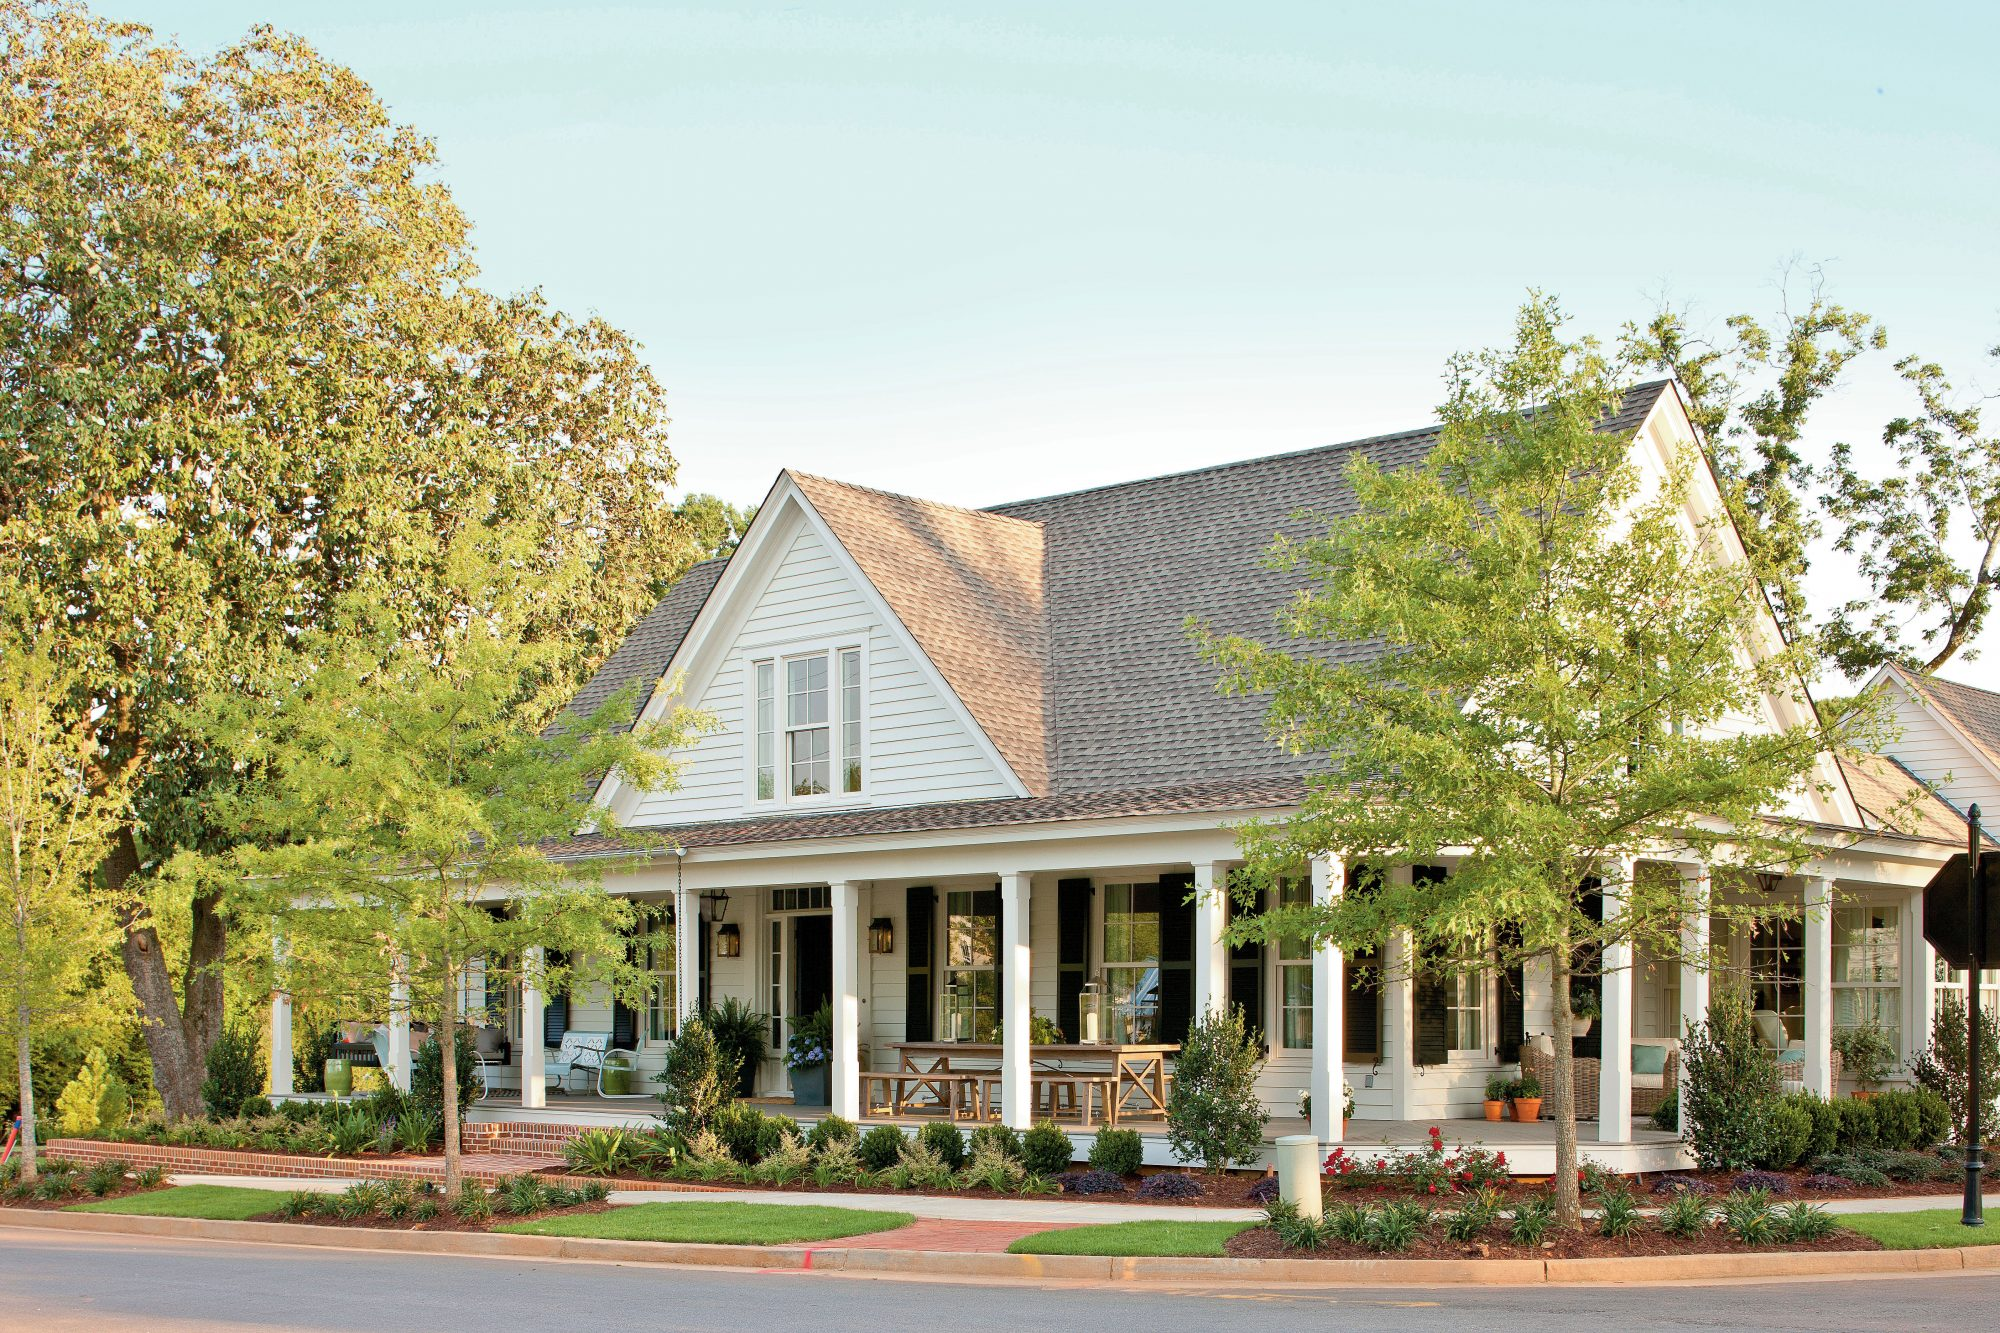 Top 12 Best-Selling House Plans - Southern Living Southern Homes Design Modern I on antique southern homes, nice southern homes, french southern homes, modern farmhouse style house plans, contemporary homes, simple southern homes, elegant southern homes, old southern homes, grand southern homes, unique southern homes, gothic southern homes, colonial southern homes, black southern homes, retro southern homes, colonial style homes, 1940's southern homes, texas southern homes, funky southern homes, expensive southern homes, custom southern homes,